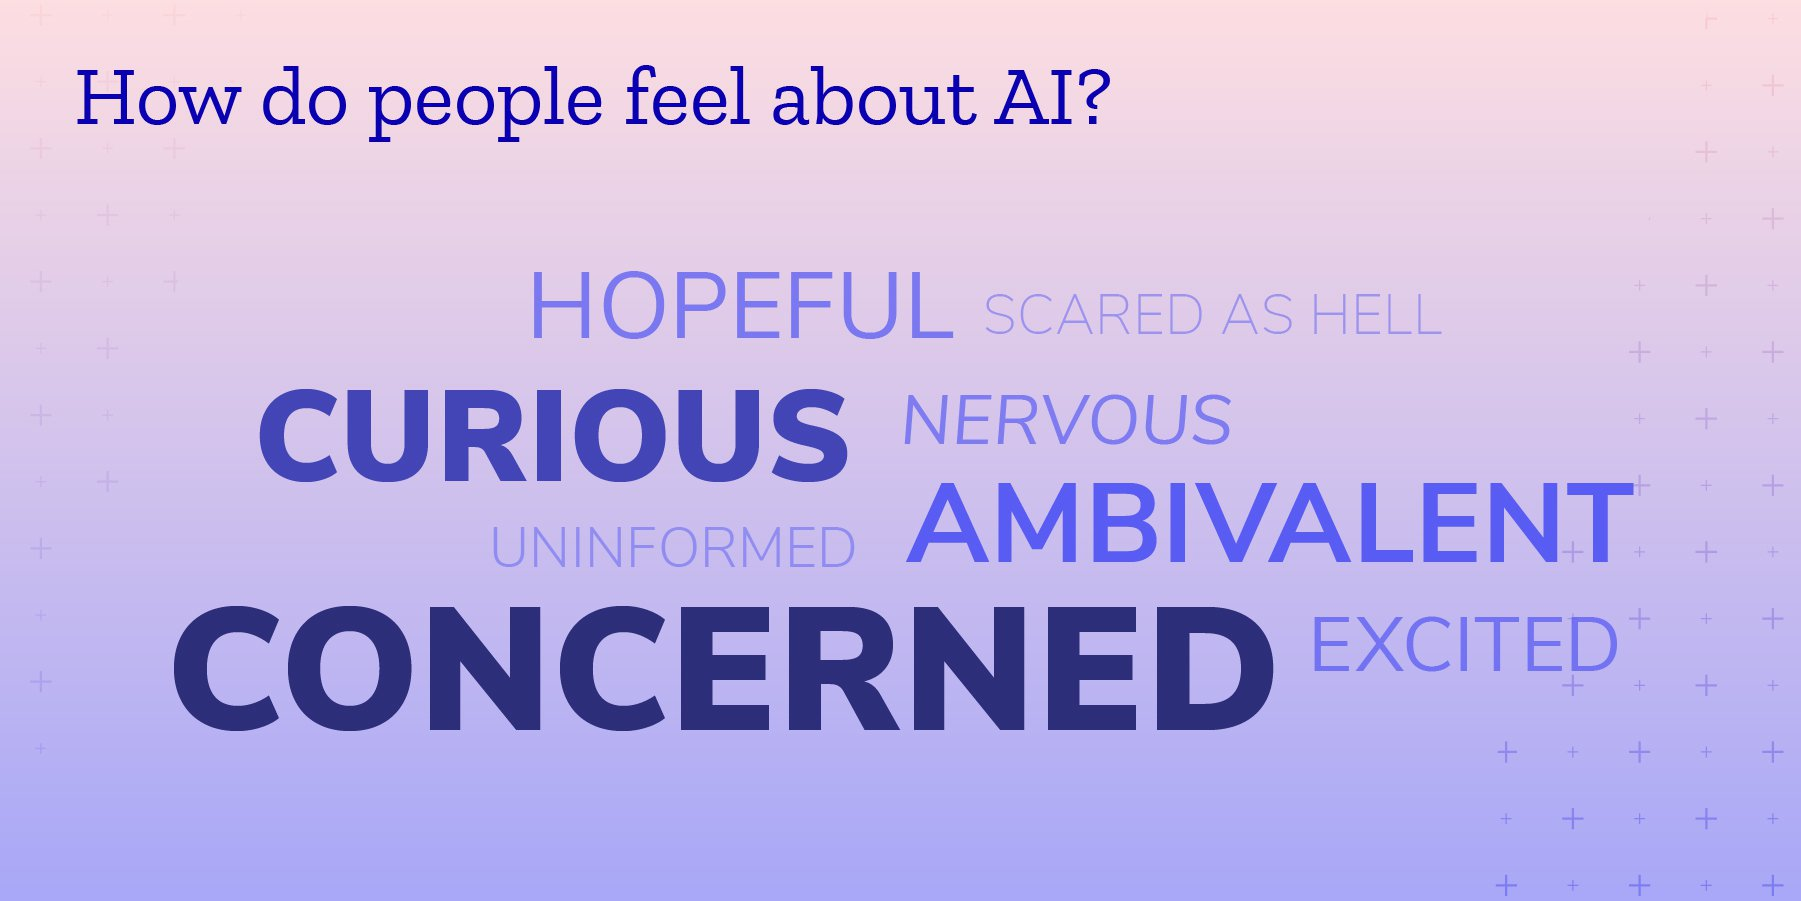 How do people feel about AI?